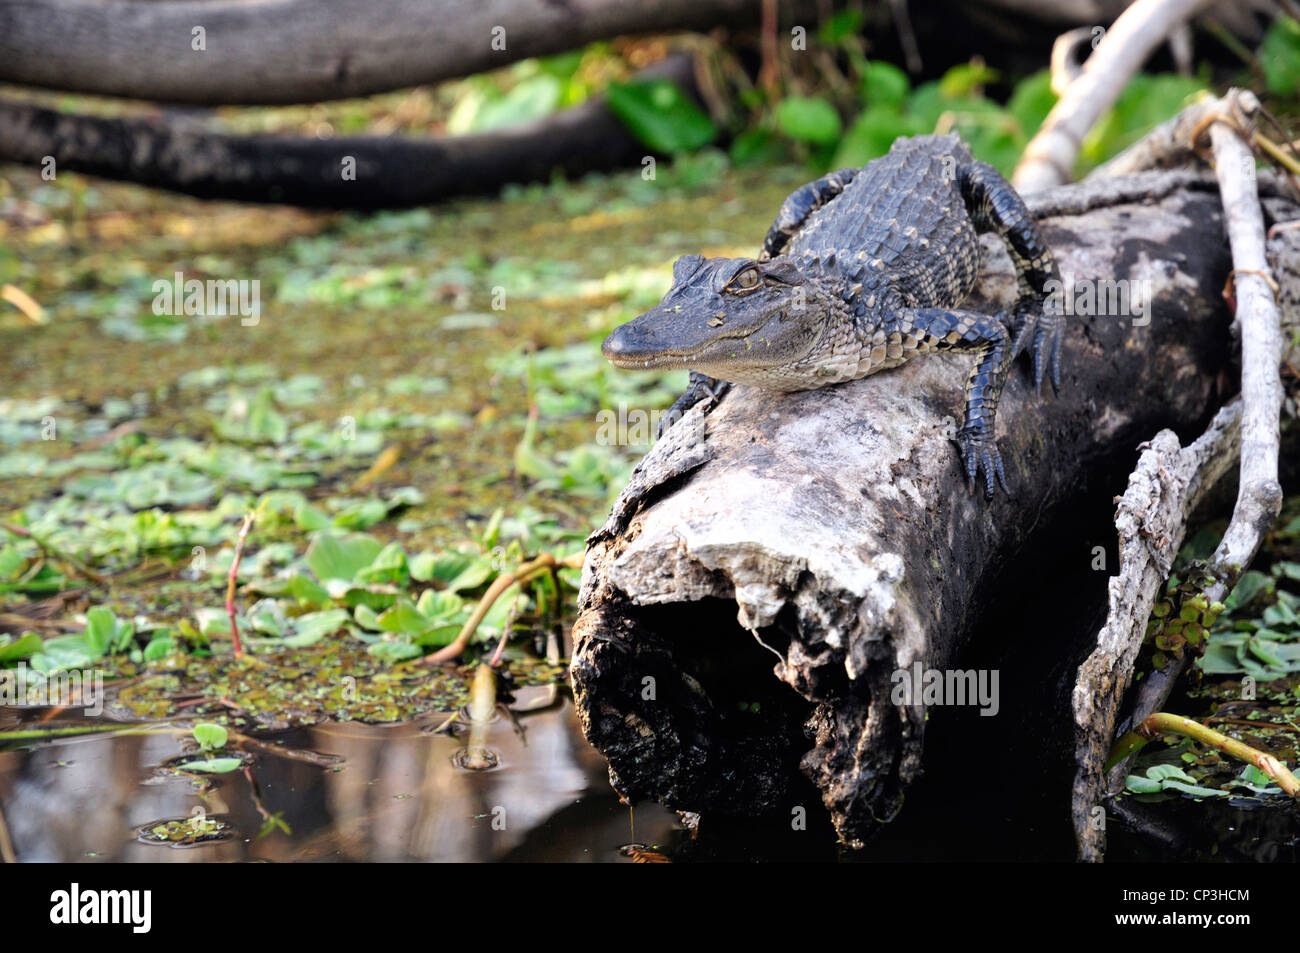 Young alligator on a log - Stock Image